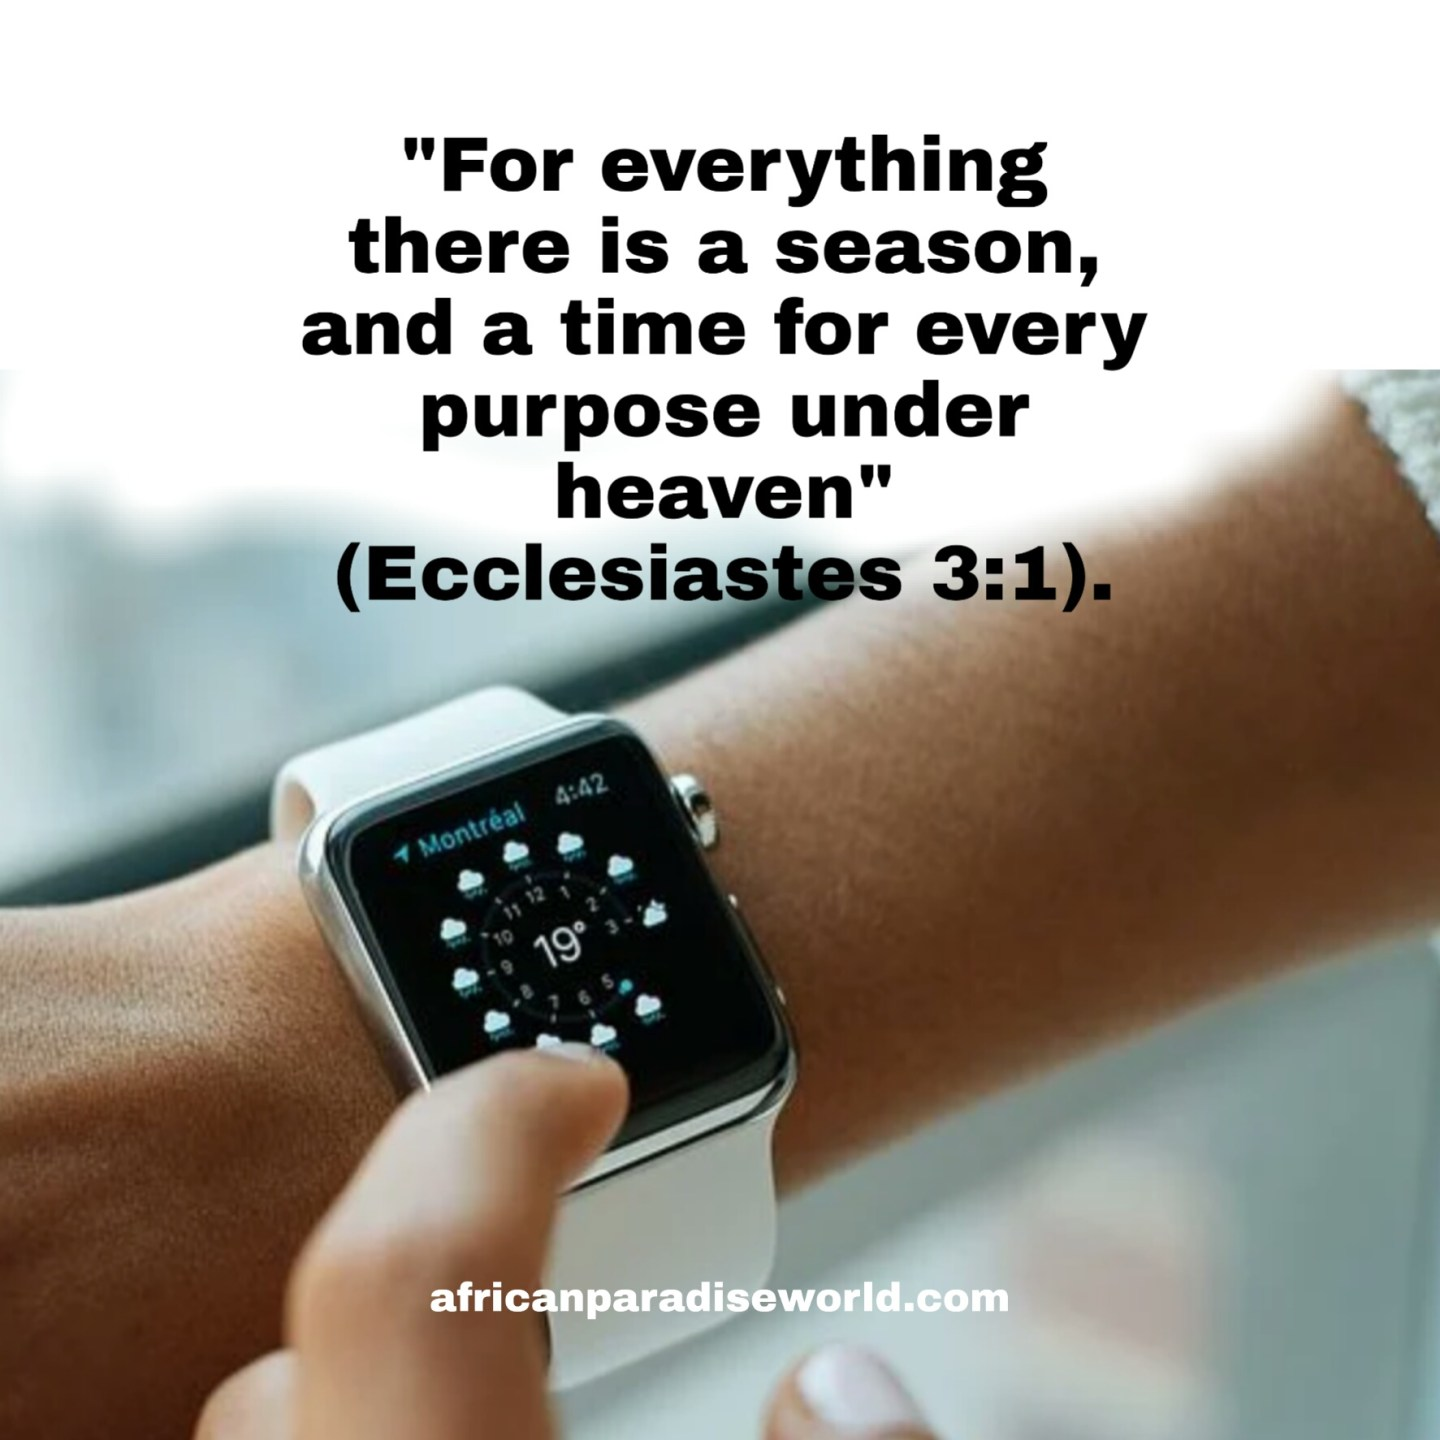 There is time for everything Bible verse